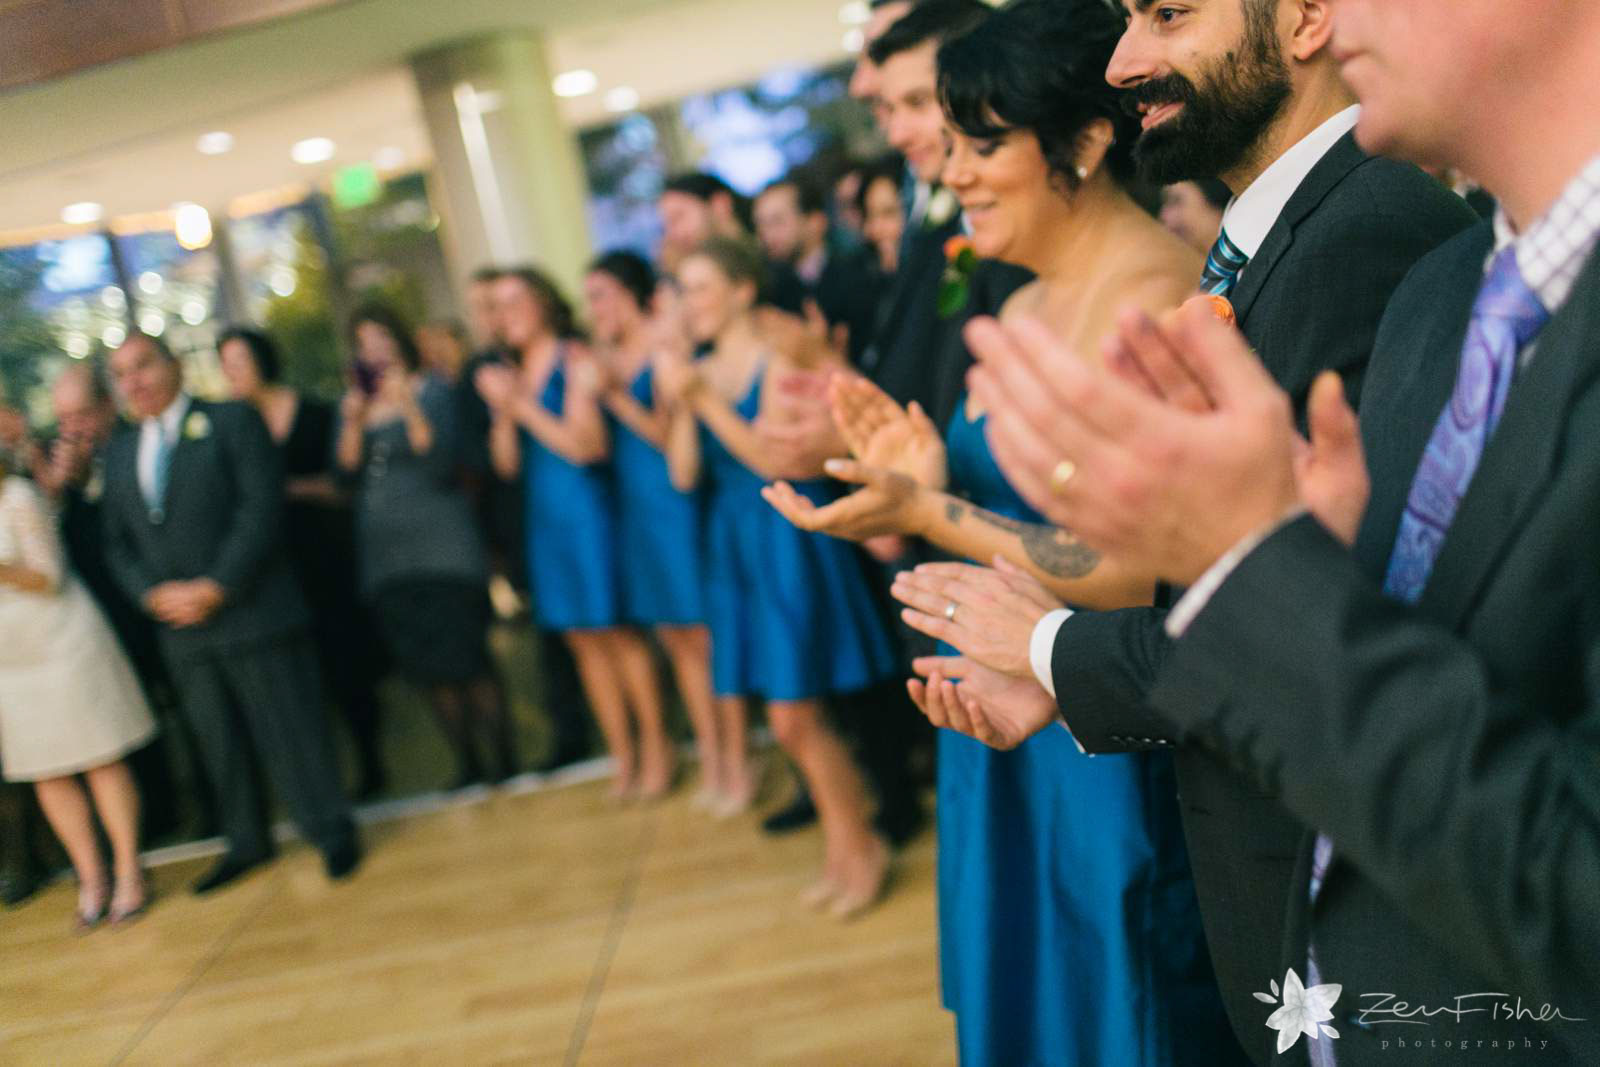 Close up of guests clapping during first dance.